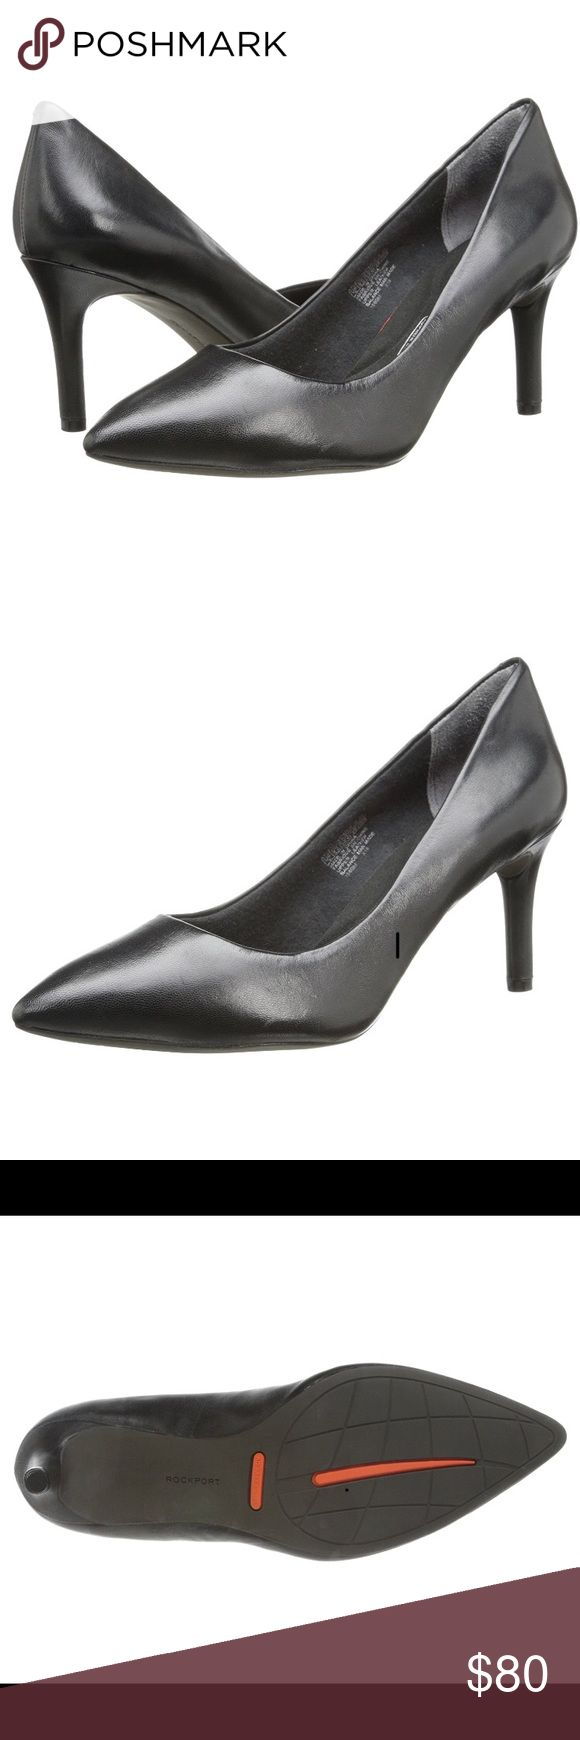 Rockport Total Motion WIDE Black leather Rockport Total Motion pumps! BRAND NEW never worn! These are a 8.5W. Excellent comfort and fit, i just need .5 size up, so I'm trying to sell. Rockport Shoes Heels